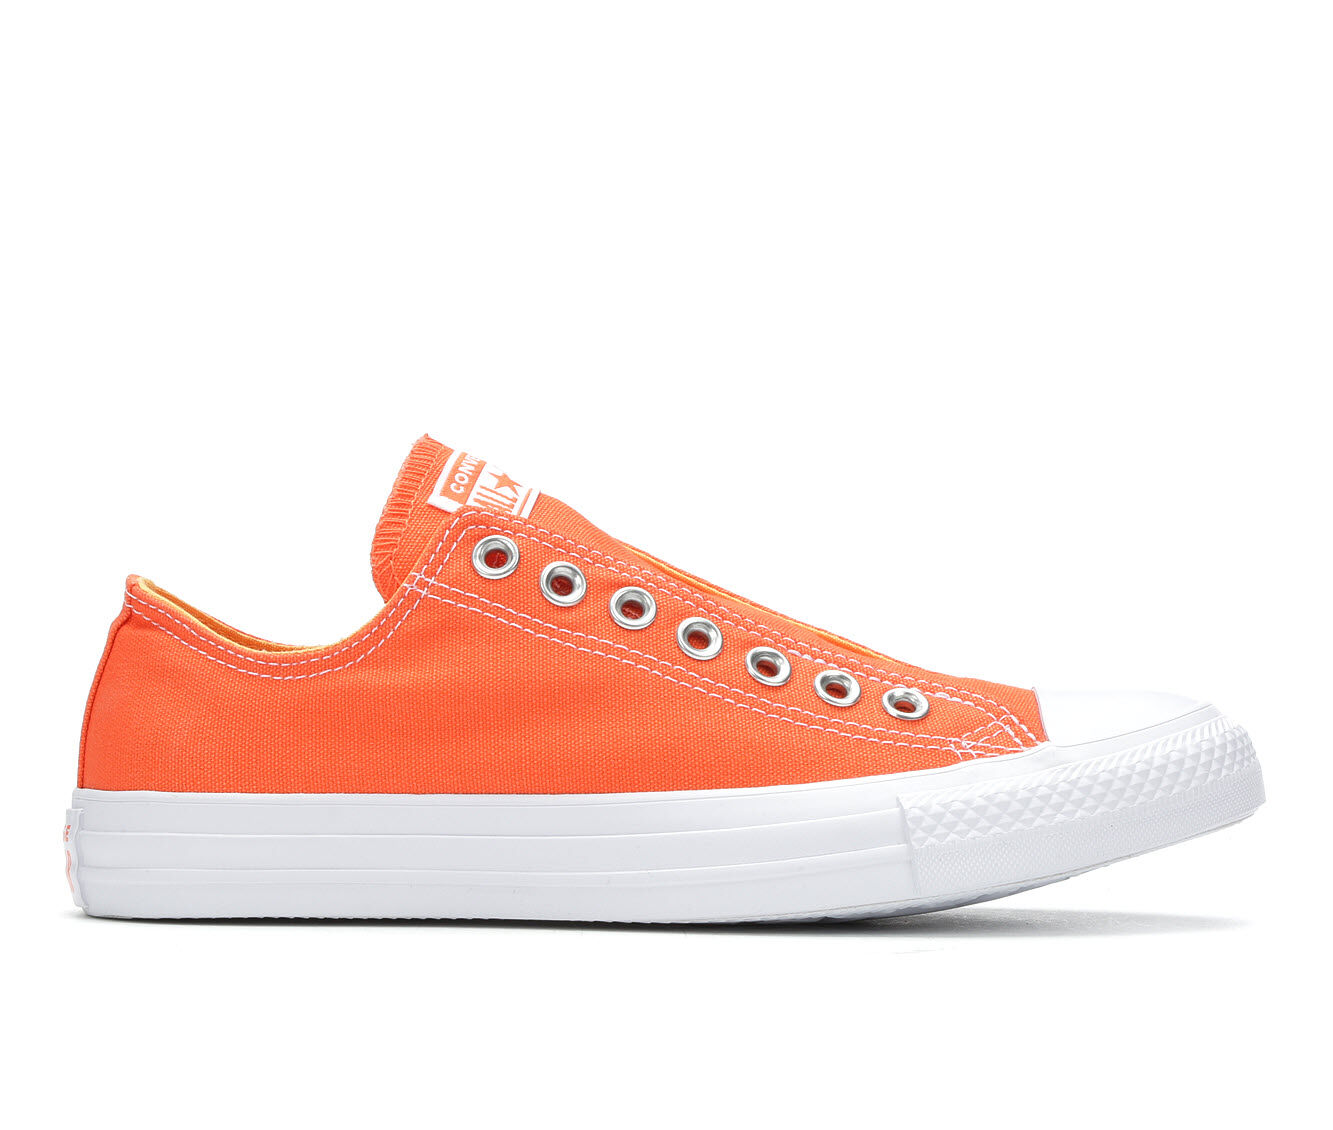 largest discount Women's Converse Chuck Taylor All Star Slip On Sneakers Turf Orange